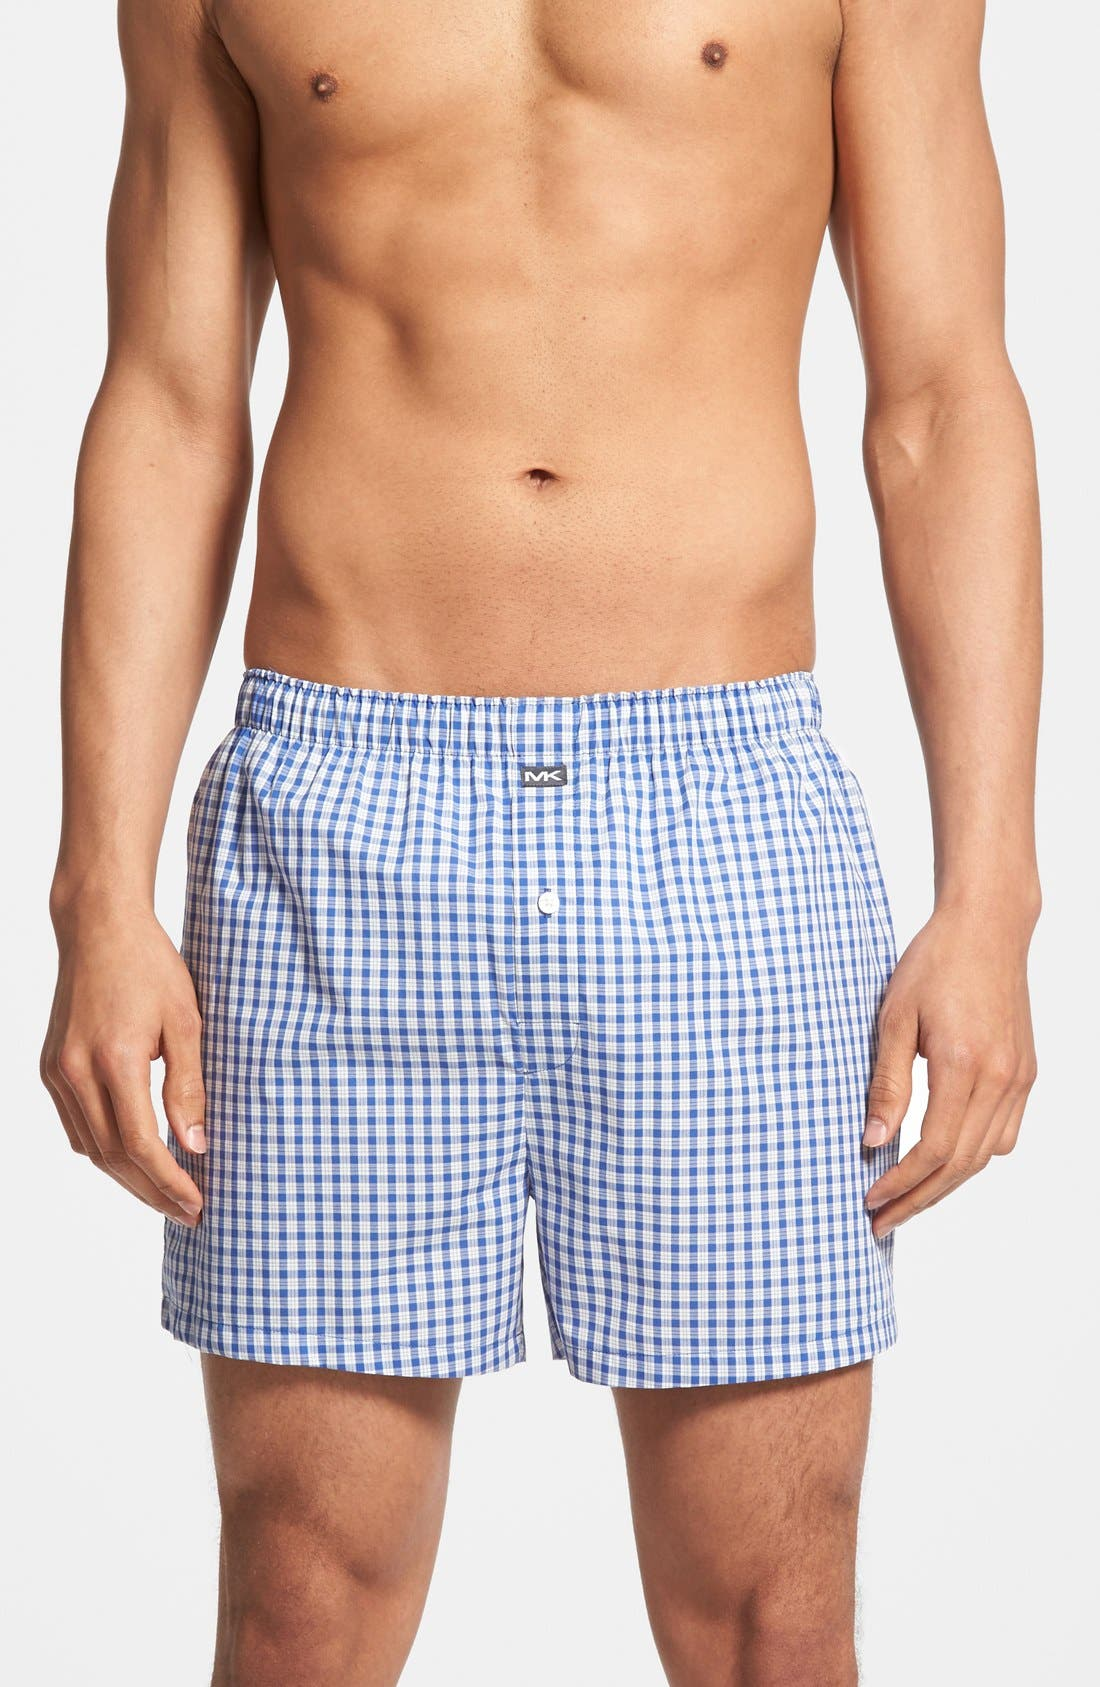 Alternate Image 1 Selected - Michael Kors Cotton Boxers (Assorted 2-Pack)